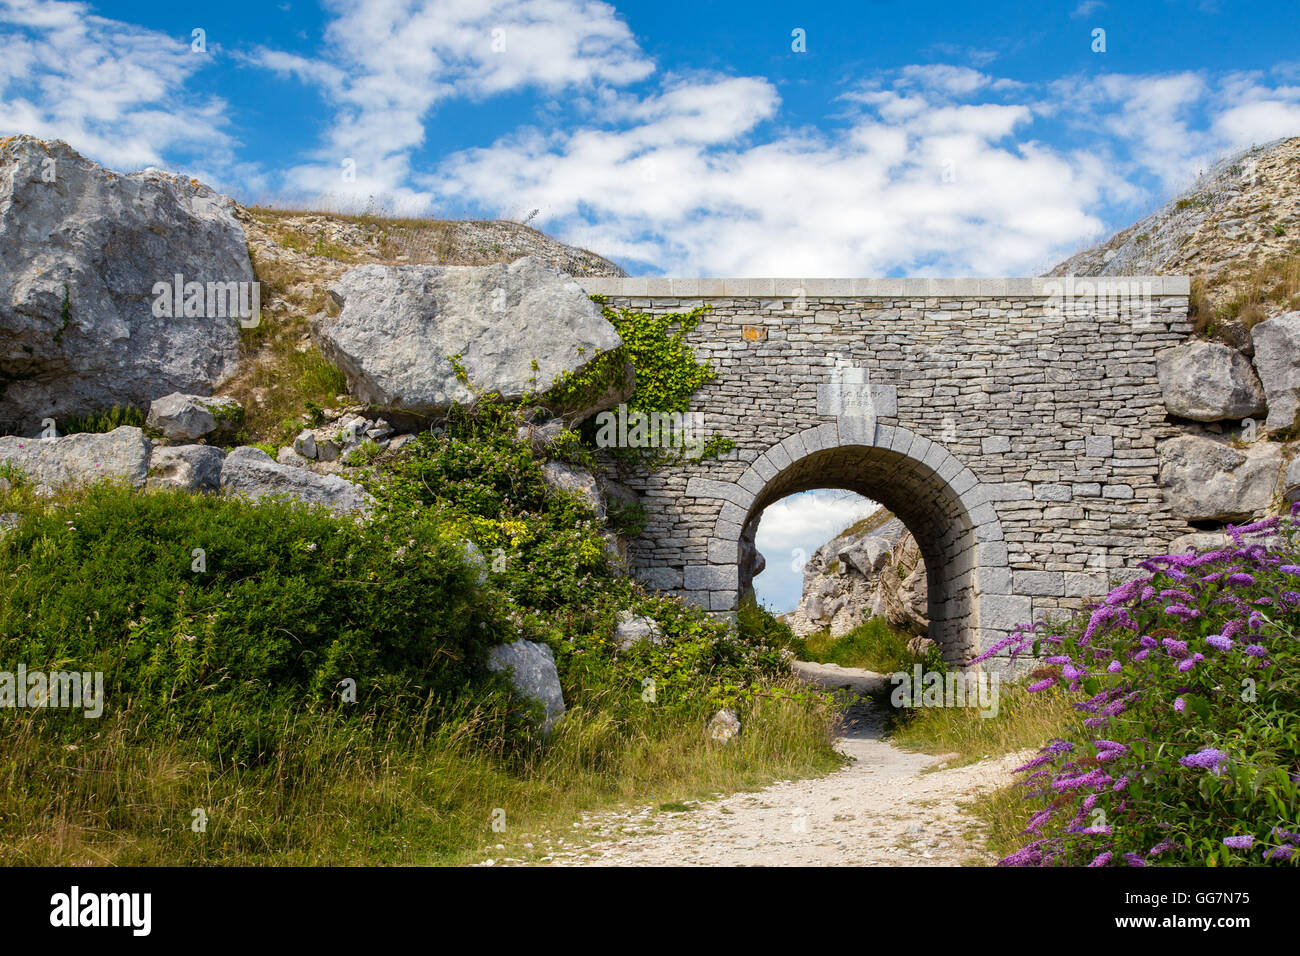 Stone sculptures and carvings in Tout Quarry on the Isle of Portland, Dorset, England - Stock Image